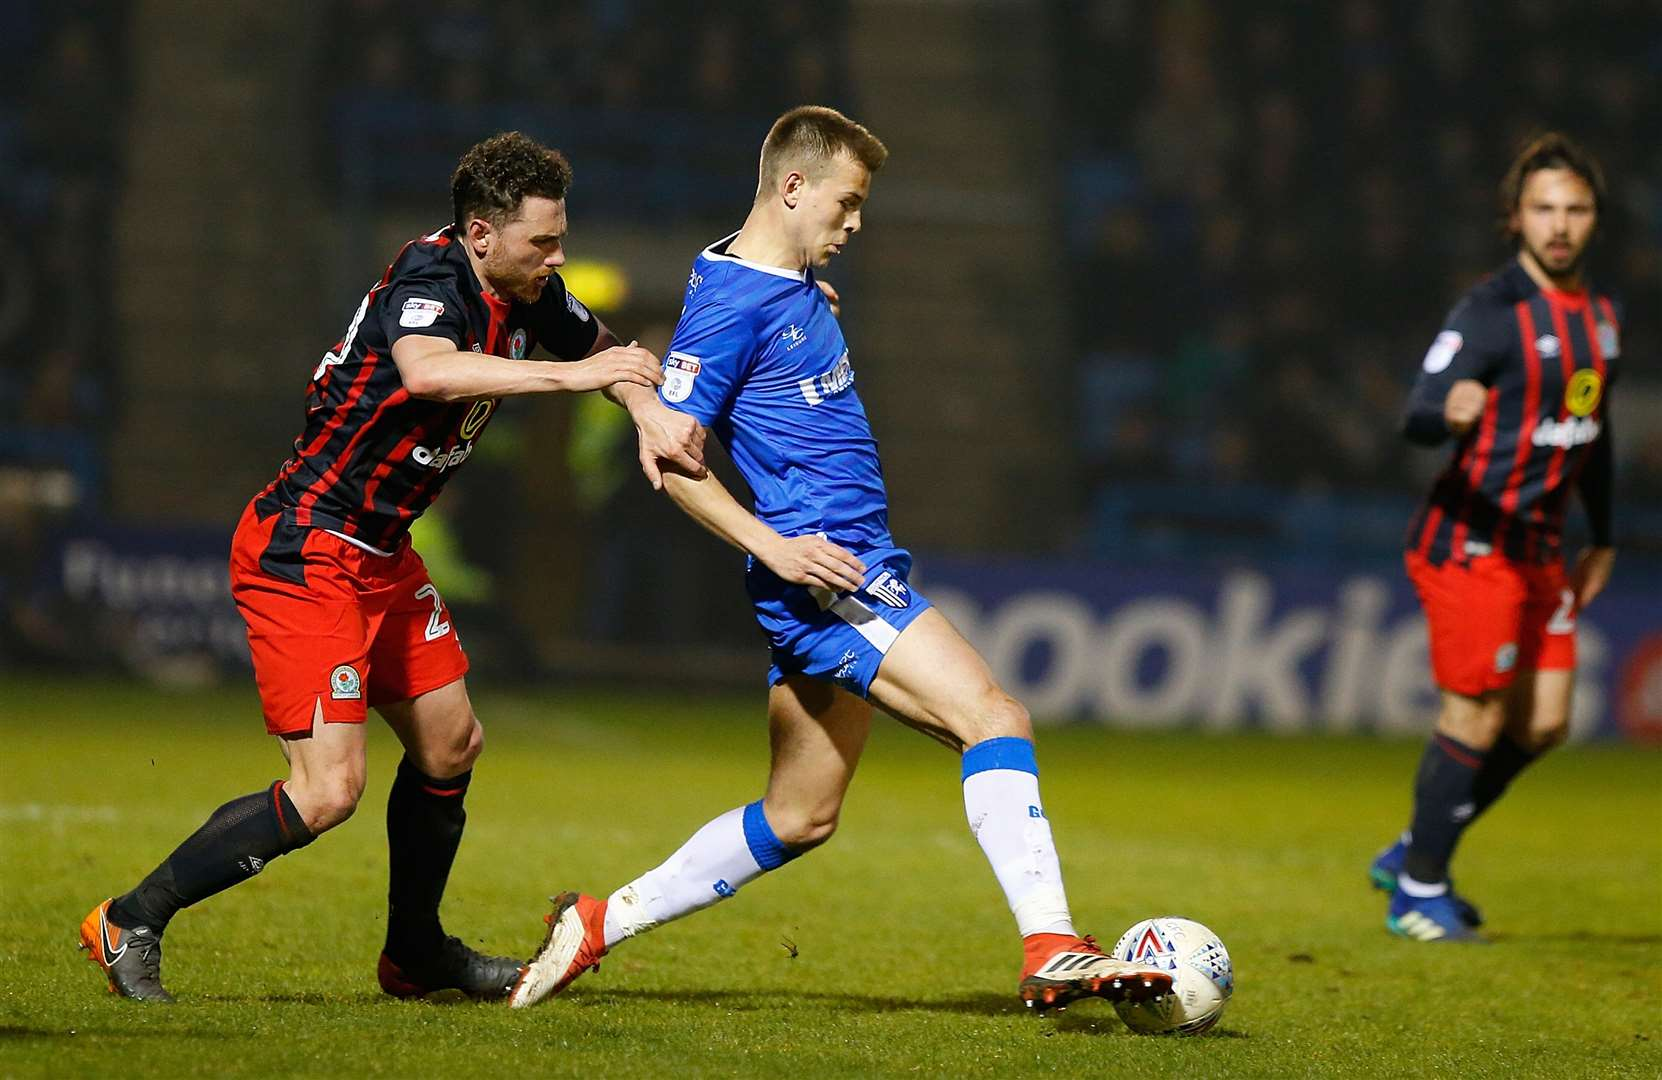 Jake Hessenthaler under pressure from Blackburn Rovers' Corry Evans Picture: Andy Jones